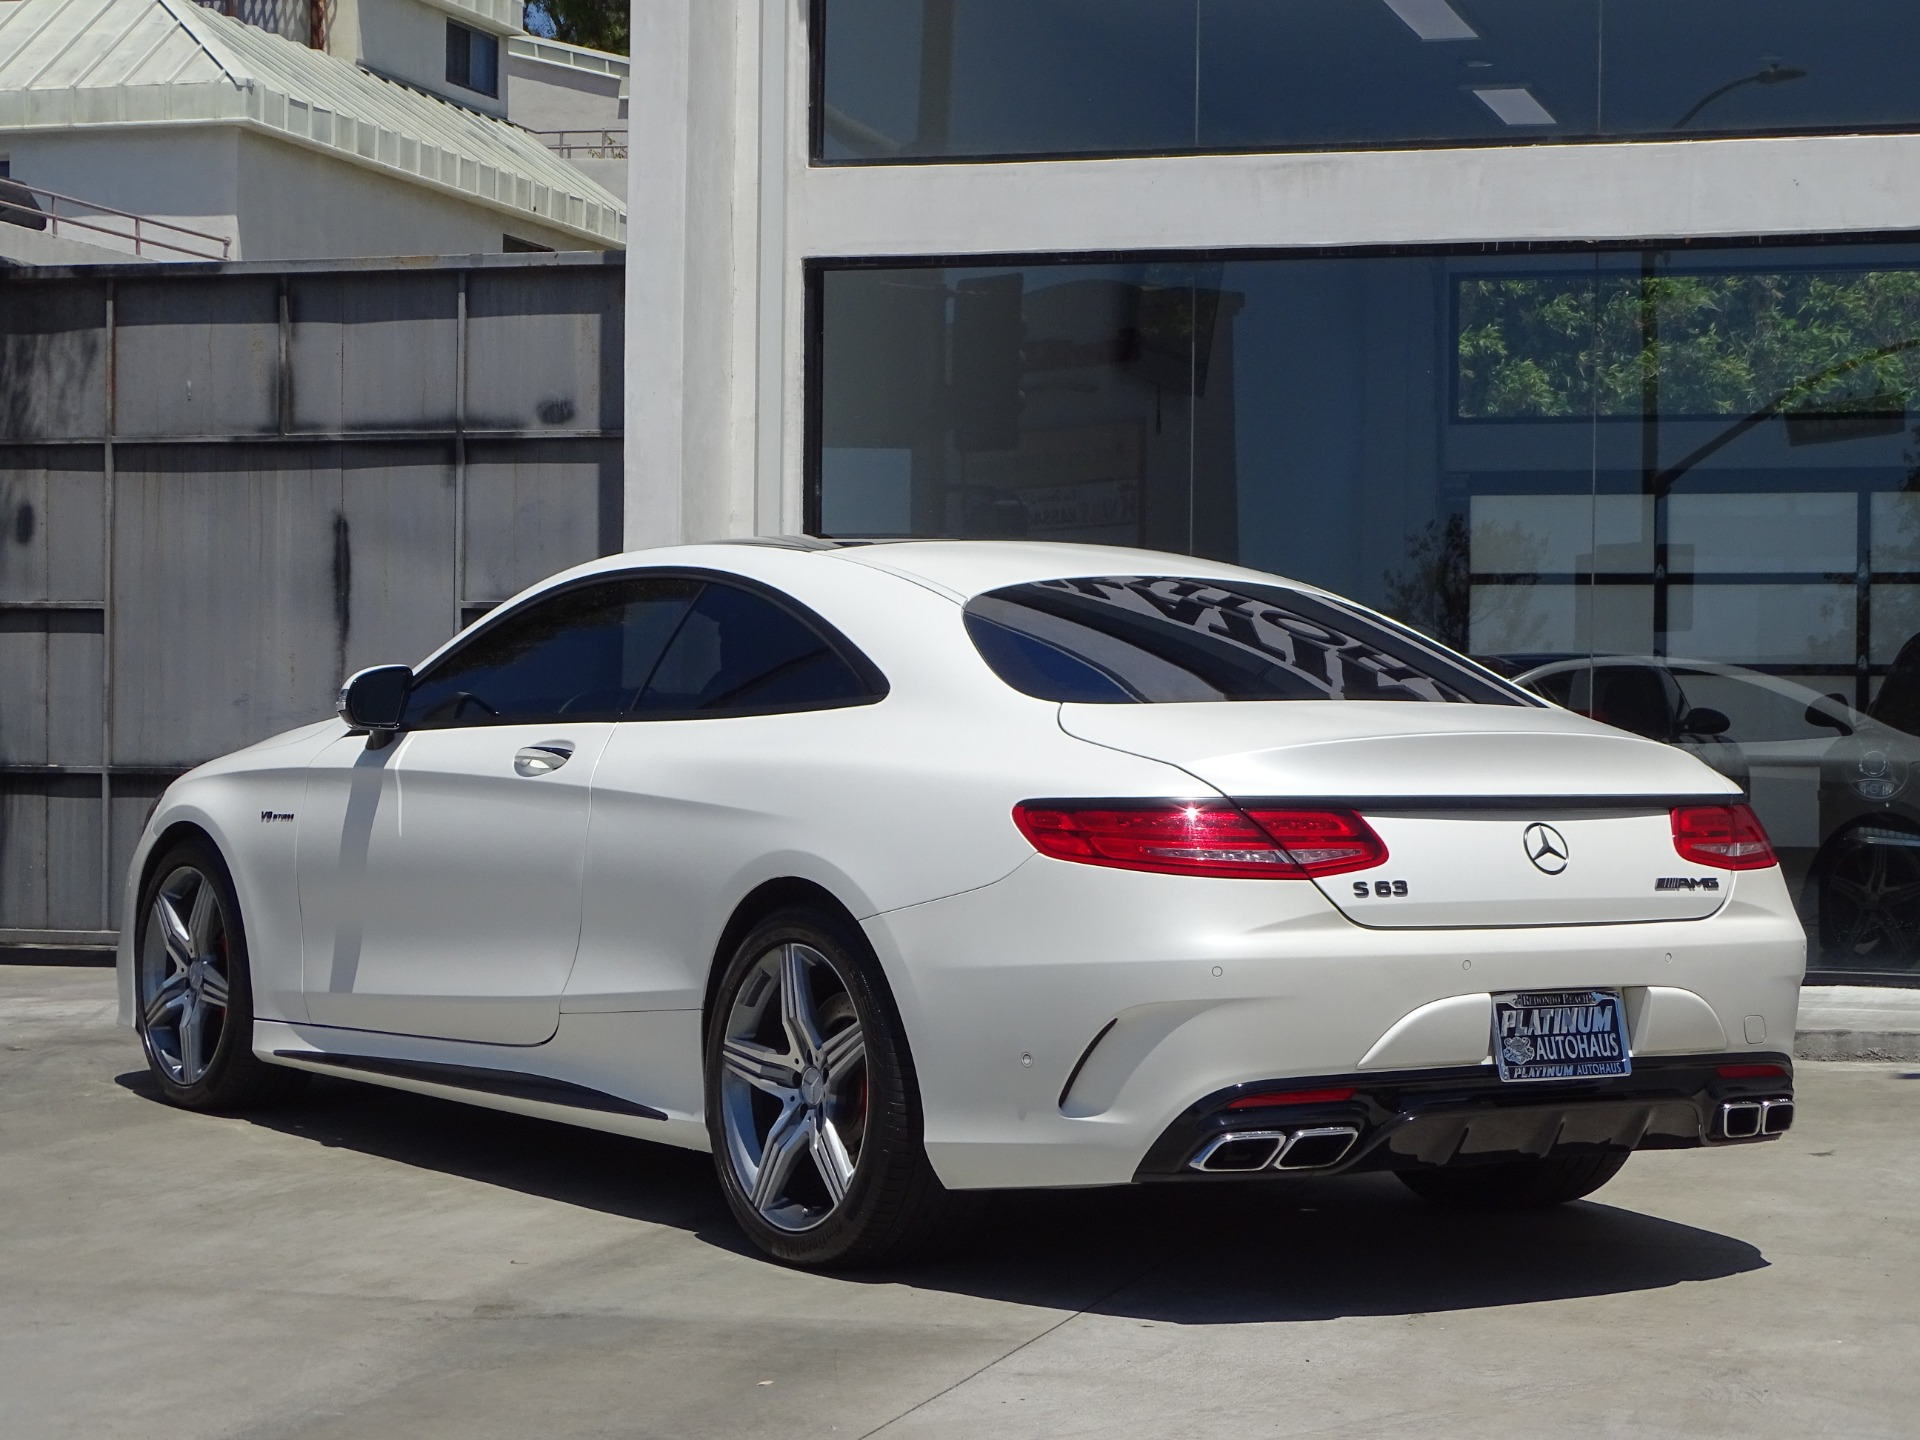 S63 Amg Coupe >> 2016 Mercedes Benz S63 Amg Coupe Orig Msrp Of 191 000